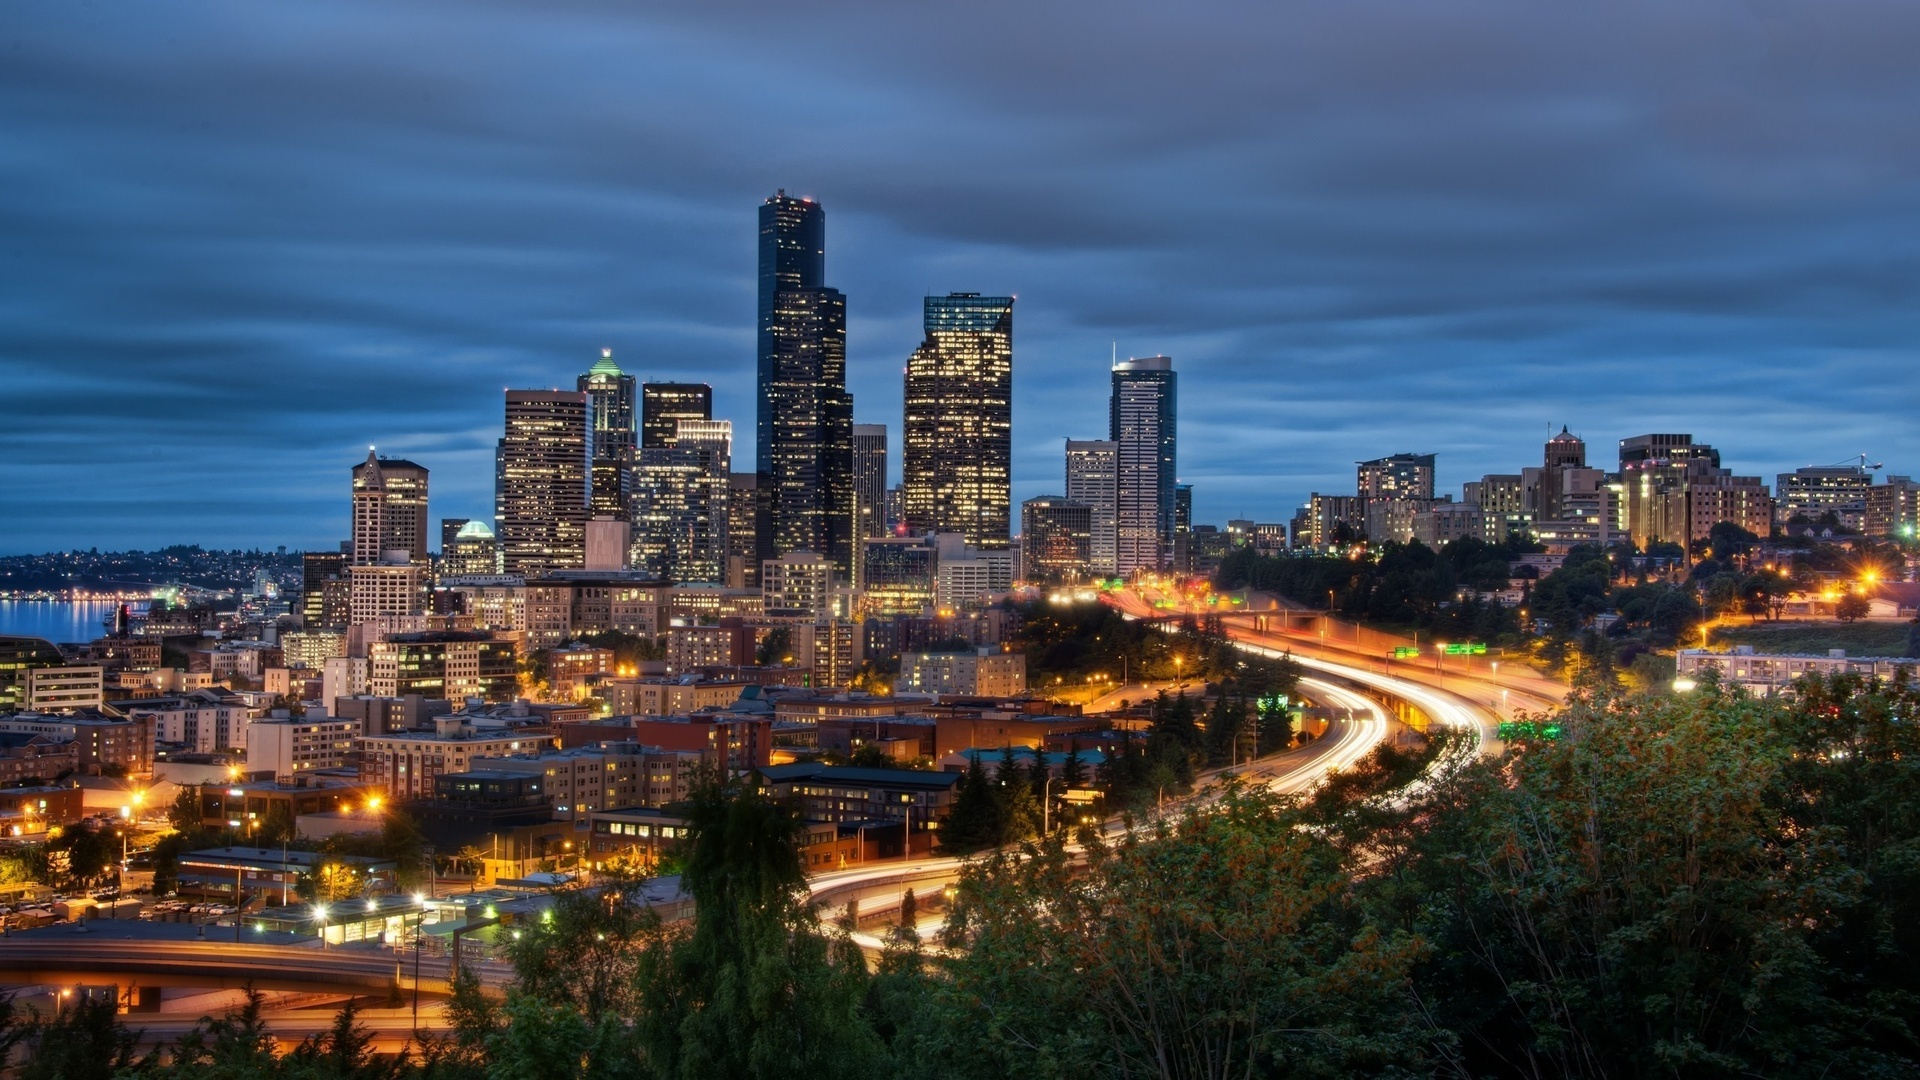 Wallpaper in Seattle night city lights downtown seattle washington 1920x1080